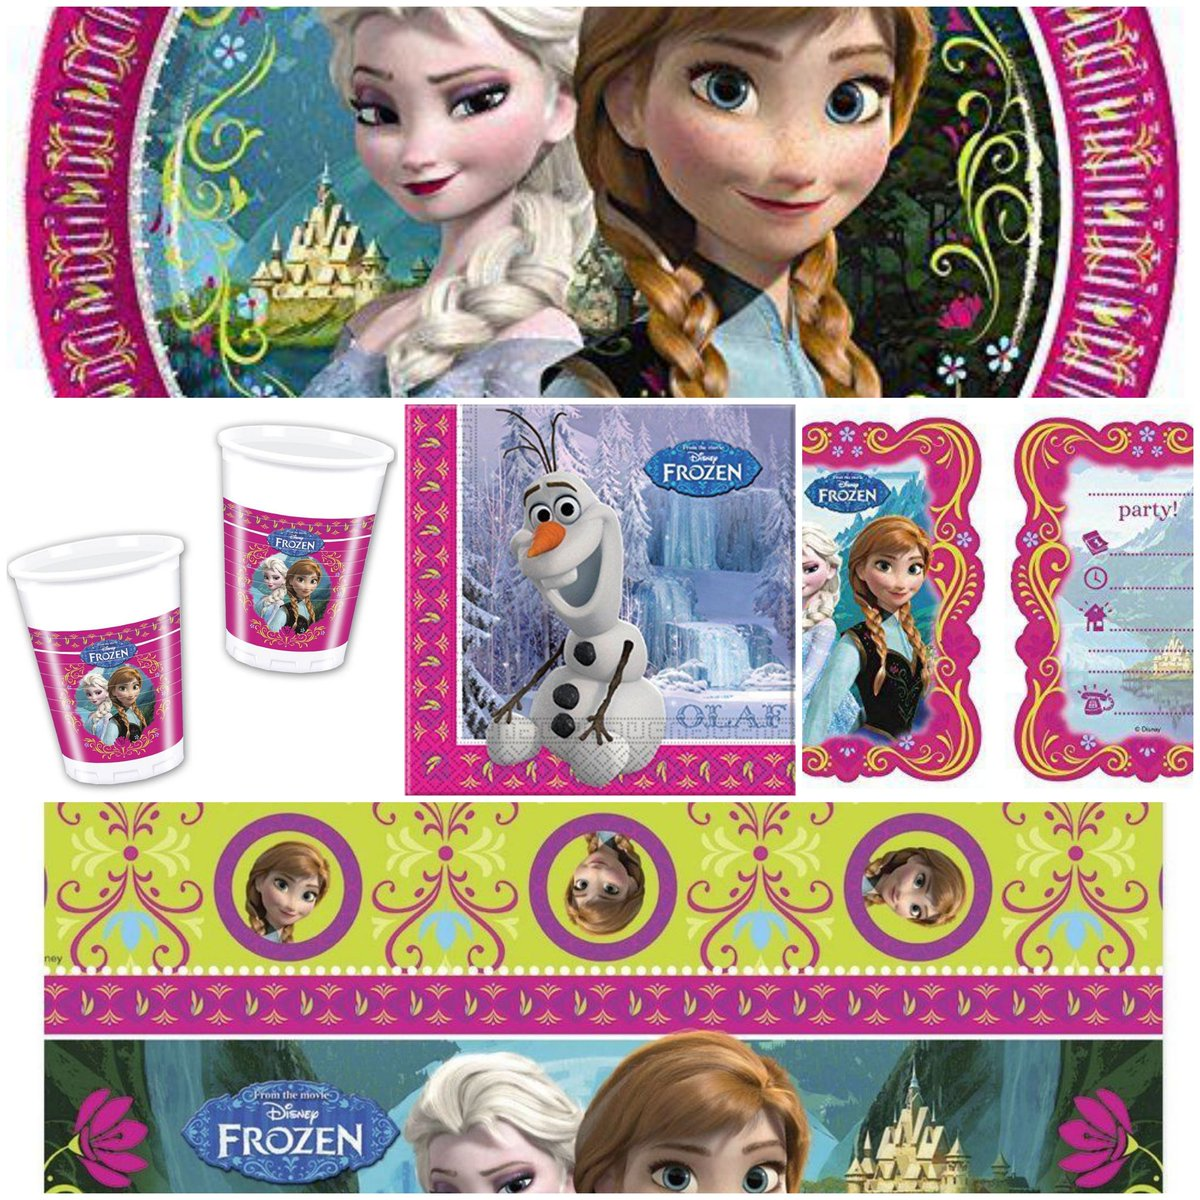 Disney Frozen Party Supplies...Banners, Invites, Plates, Cups, Napkins and more! FREE UK Delivery on Orders Over £25! https://totallytoytastic.com/collections/disney-frozen-party-supplies… #giftideas #gifts #party #birthdayparty #birthday #Disney #Frozen #Frozen2 pic.twitter.com/1oKnq4Wa9p